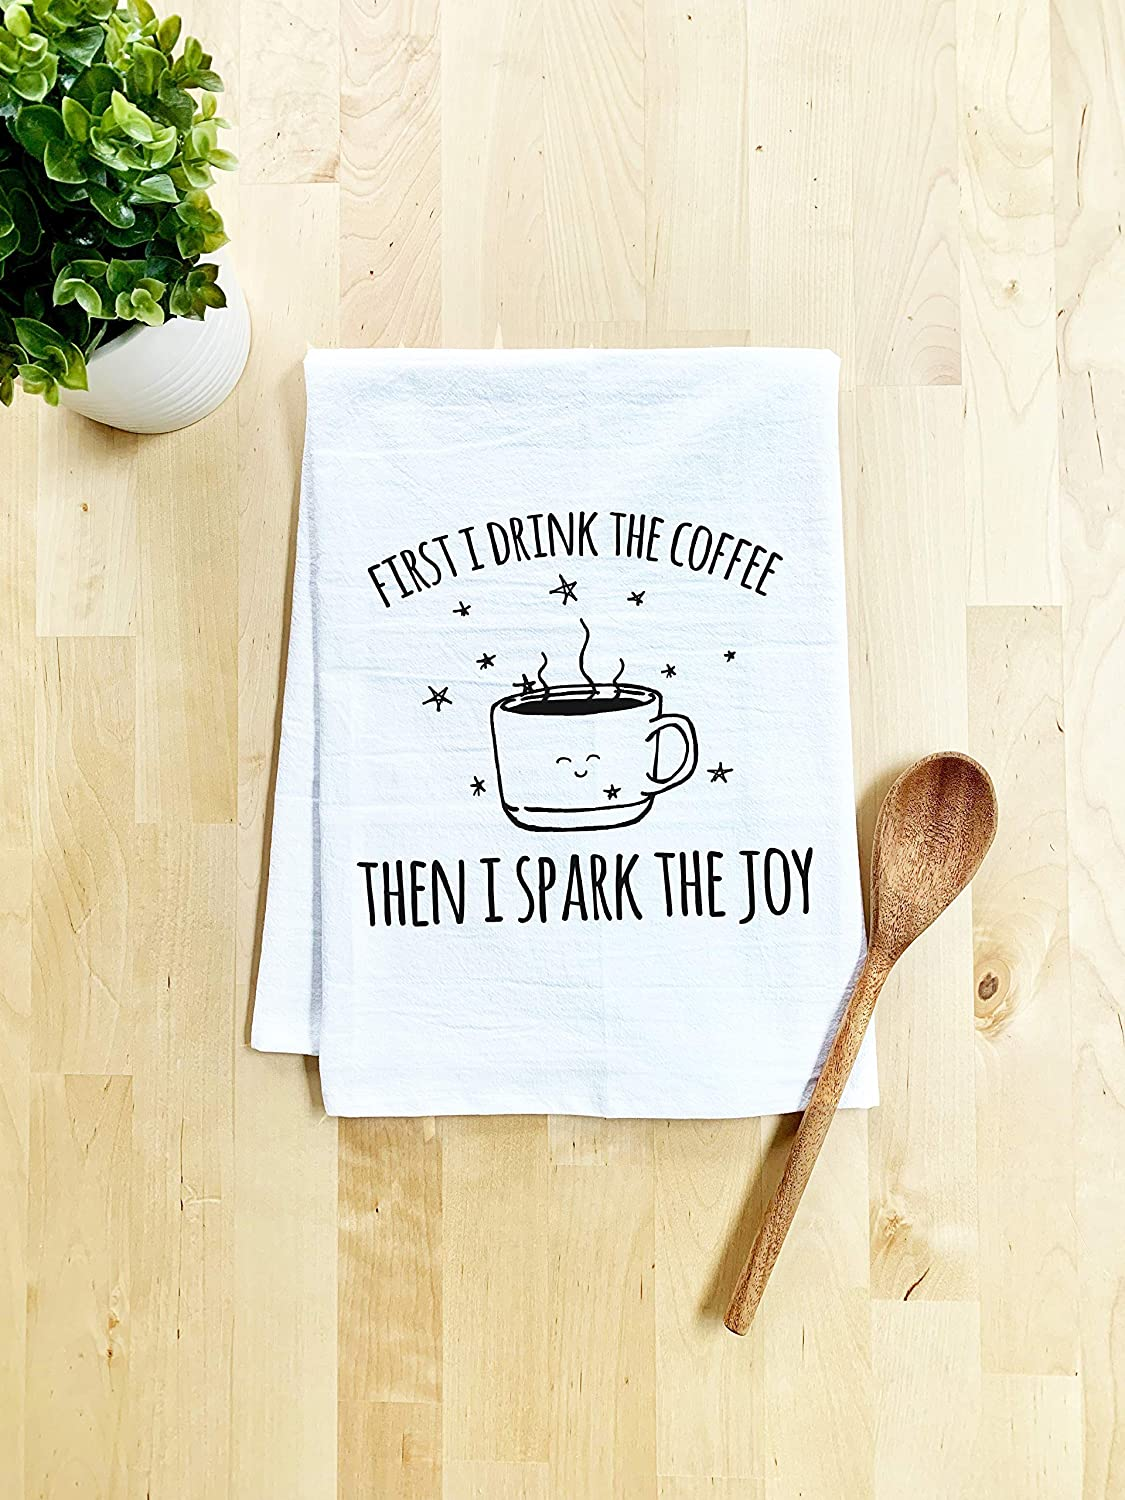 Funny Kitchen Towel, First I Drink The Coffee Then I Spark The Joy, Flour Sack Dish Towel, Sweet Housewarming Gift, White